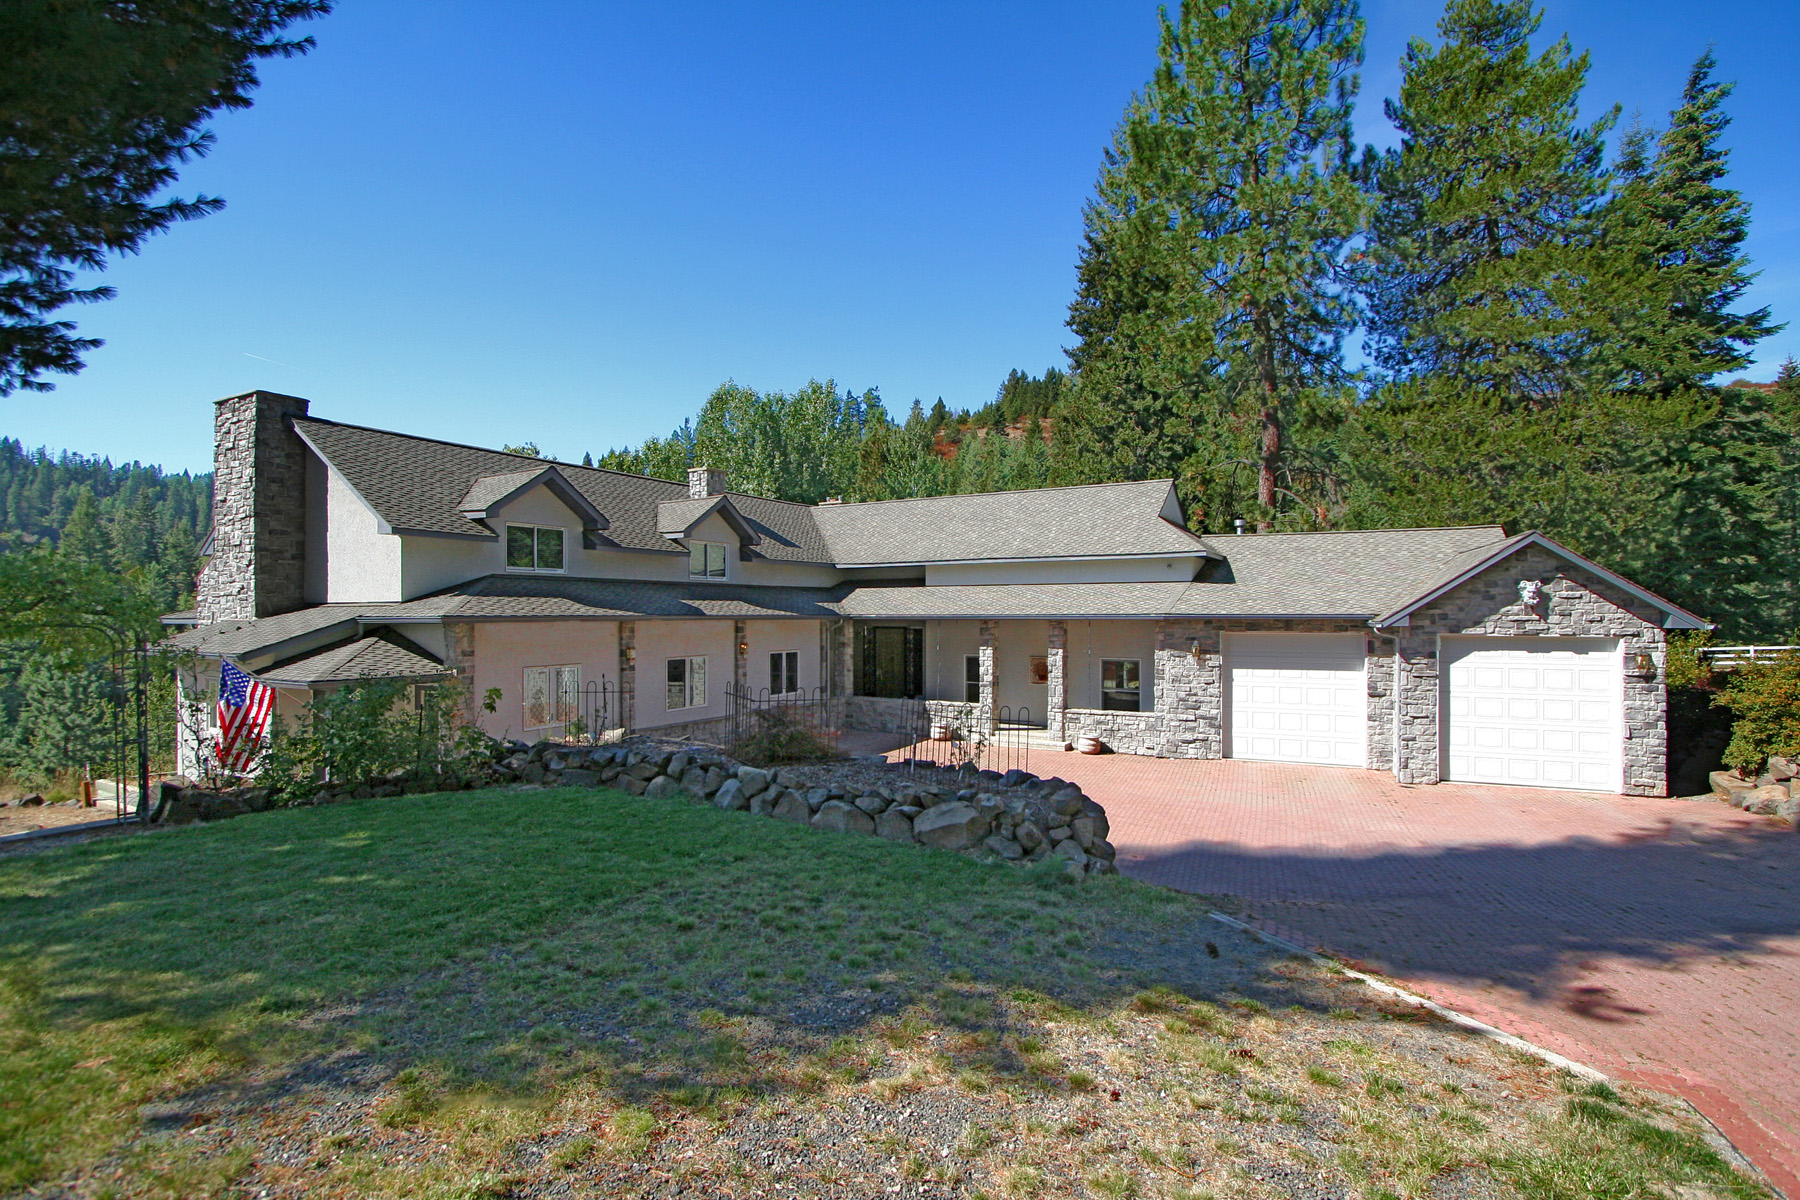 Single Family Home for Sale at Northern Idaho Paradise!!! 11618 W. Rockford Bay Rd. Coeur D Alene, Idaho 83814 United States